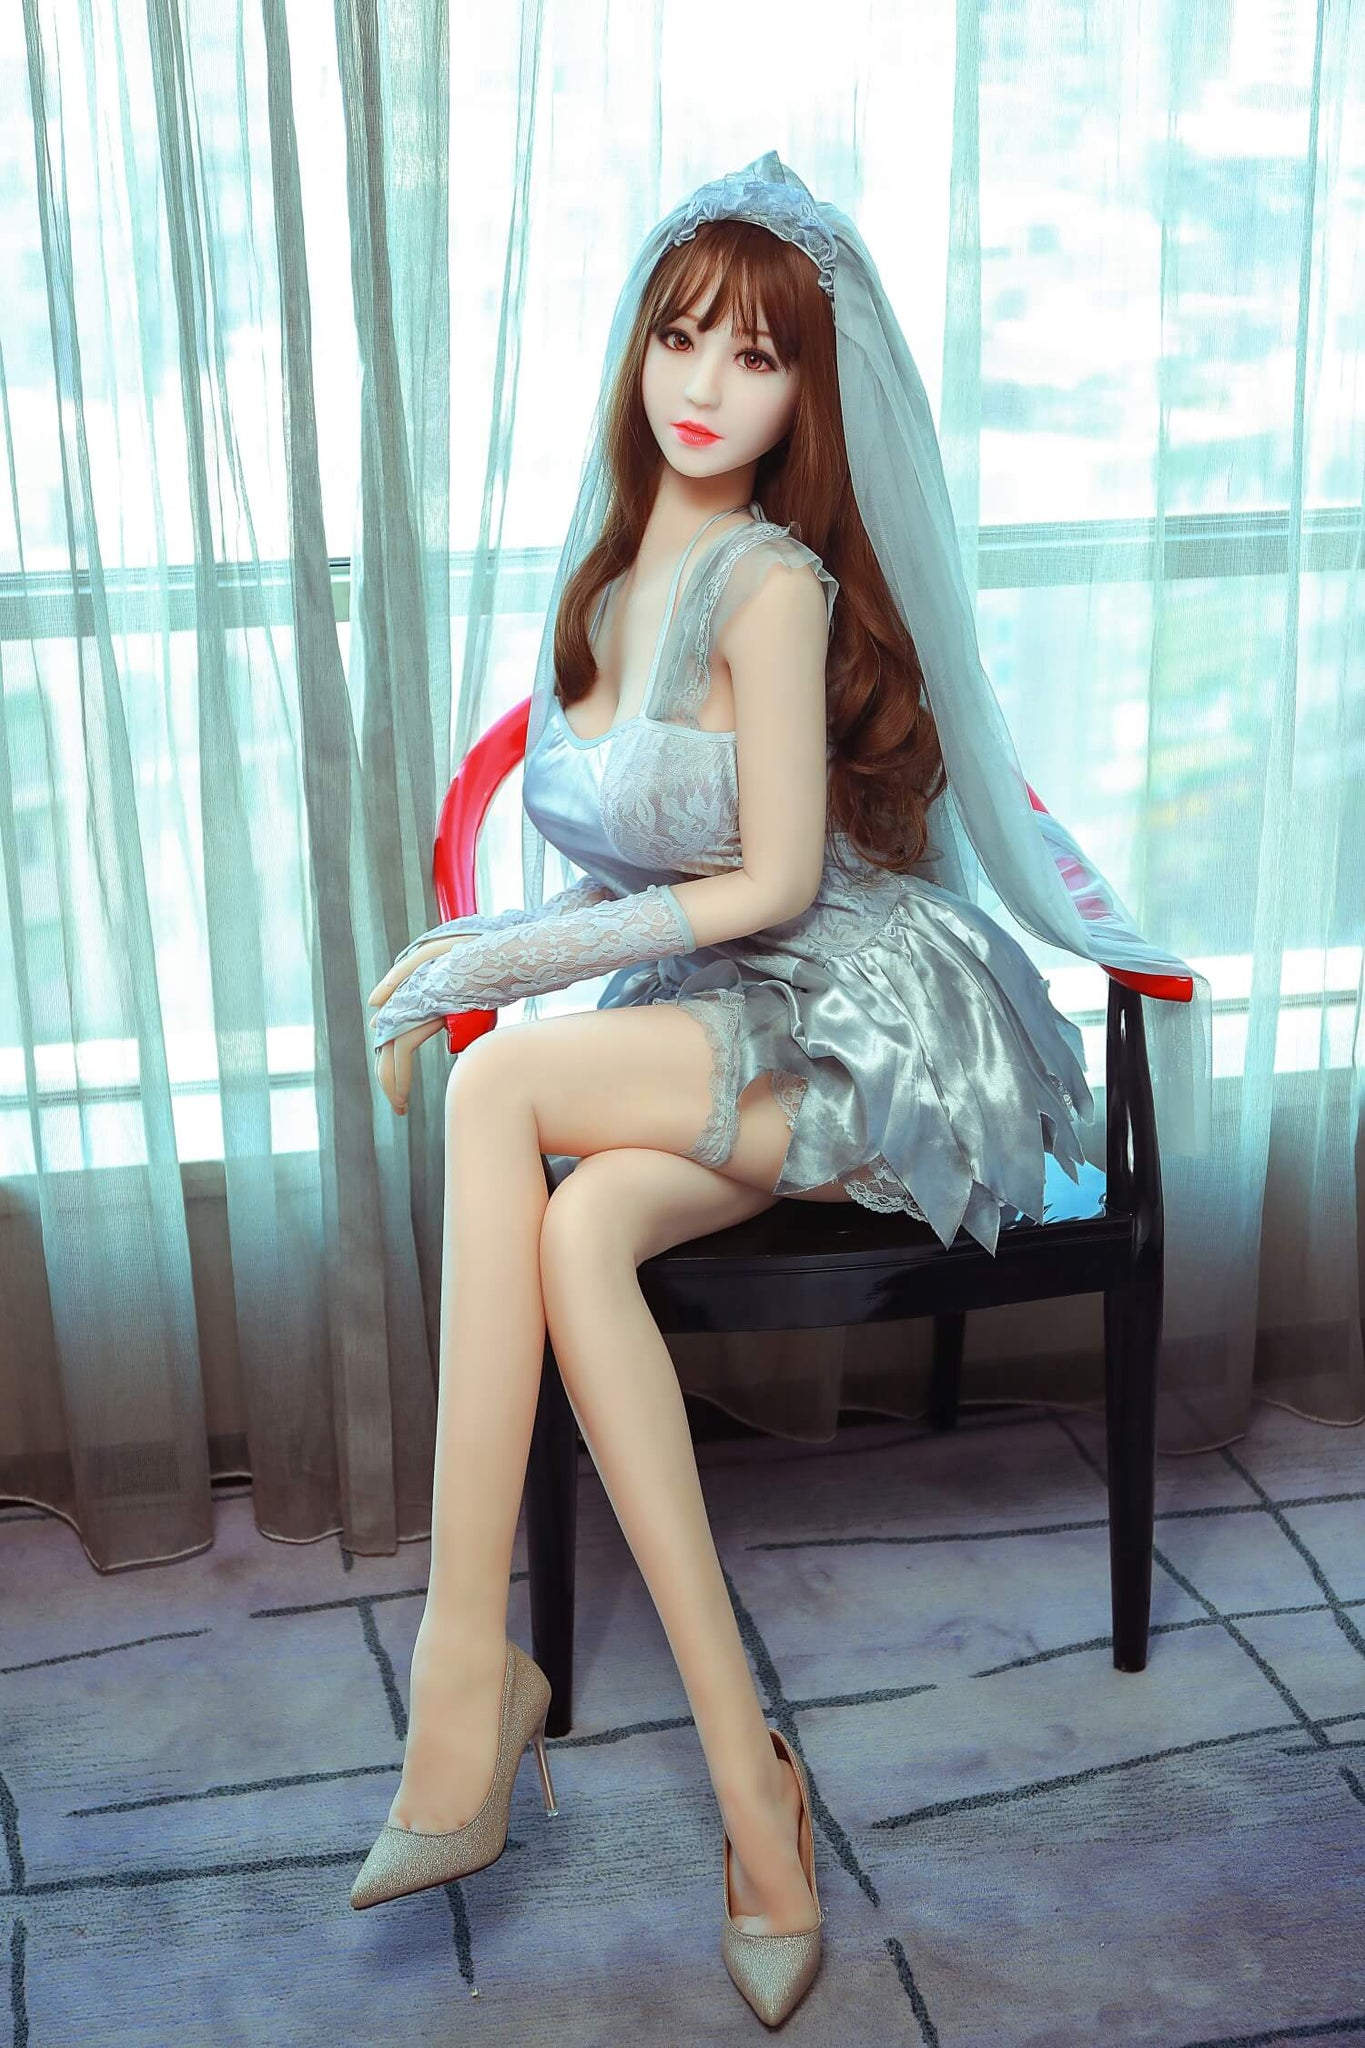 Marian Realistic Sex Doll - Lifelike Real Bride Sex Doll Cheap Price